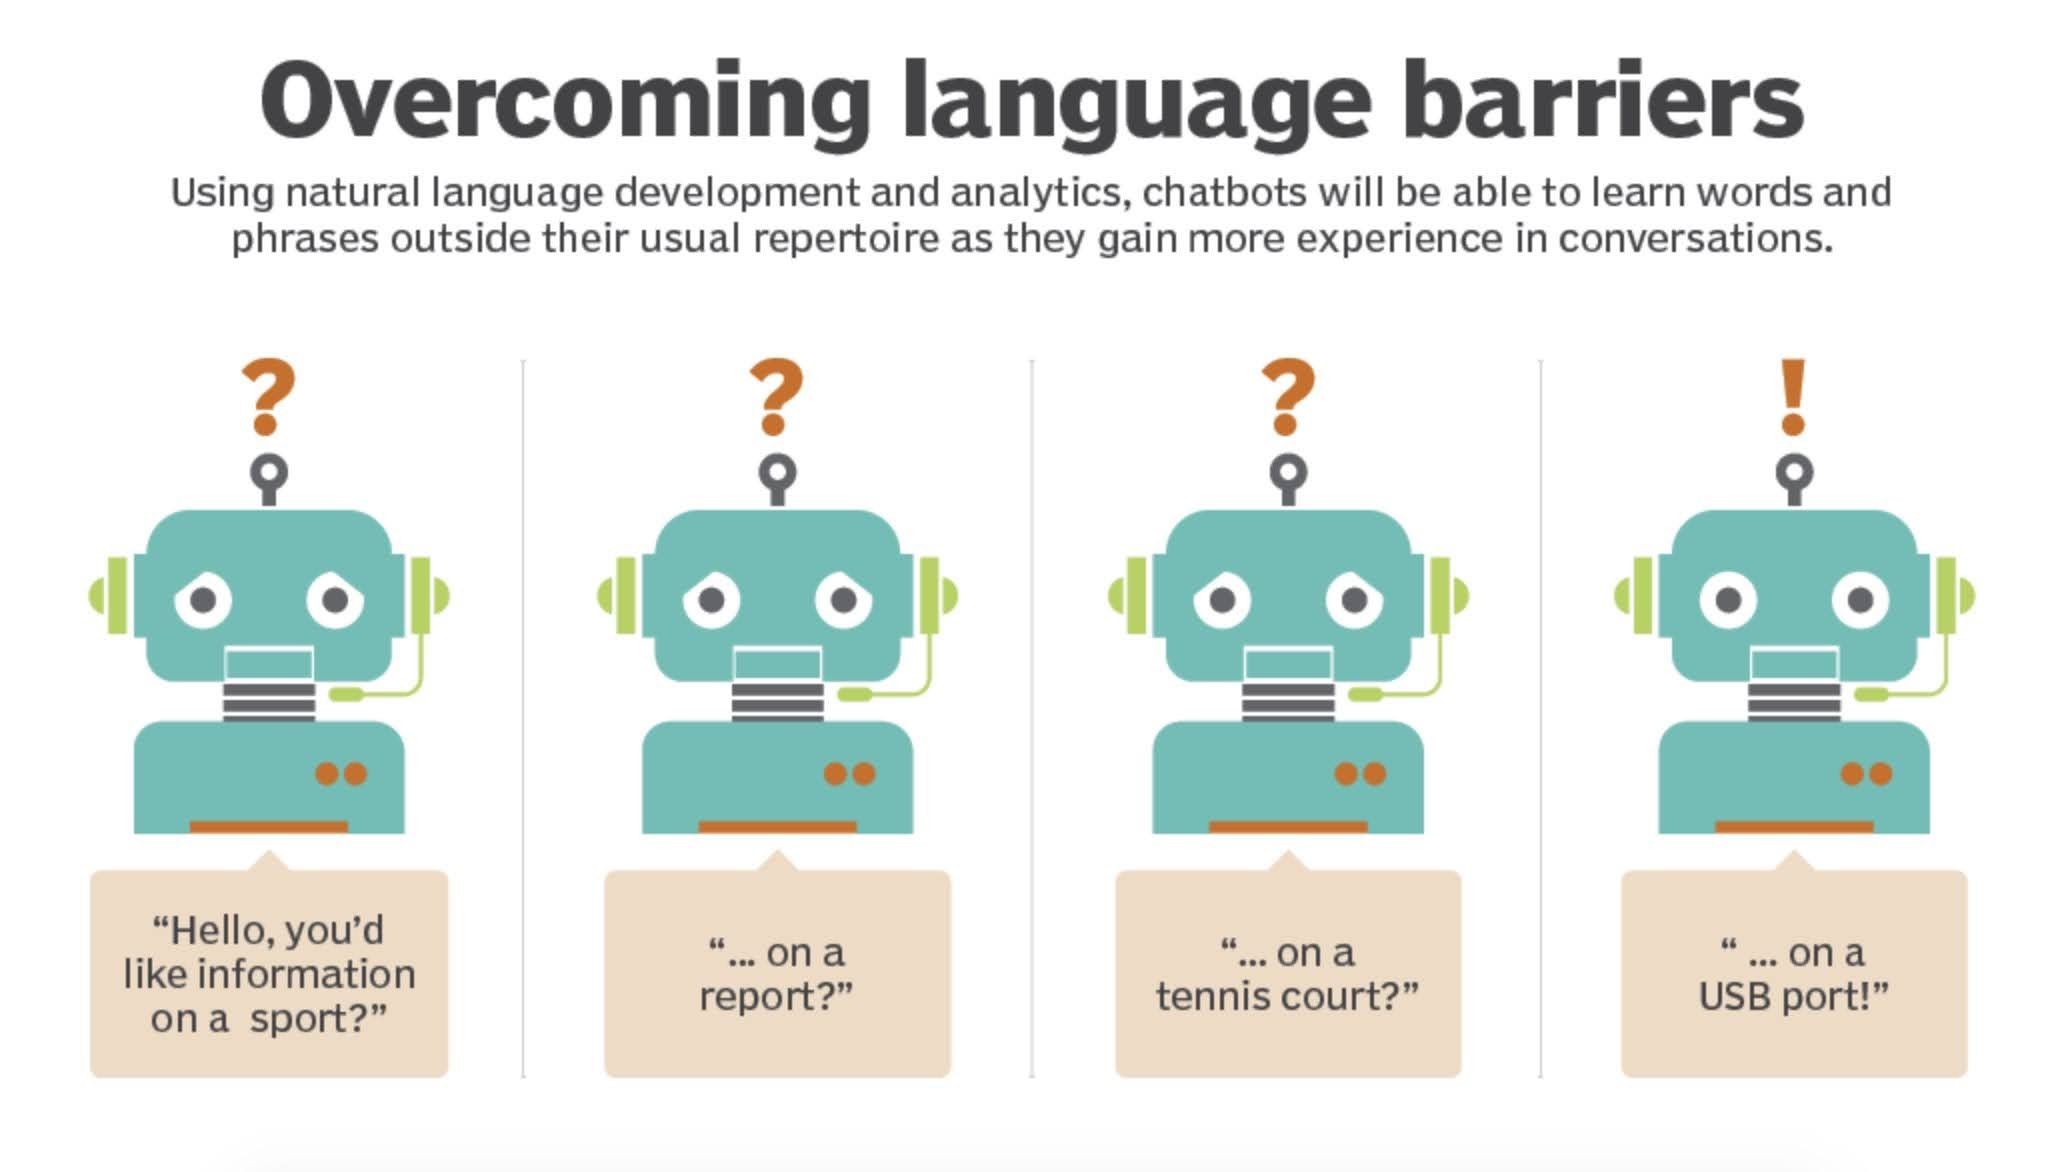 Overcome language barriers: Using natural language development and analytics, chatbots will be able to learn words and phrases outside their usual repertoire as they gain more experience in conversations.